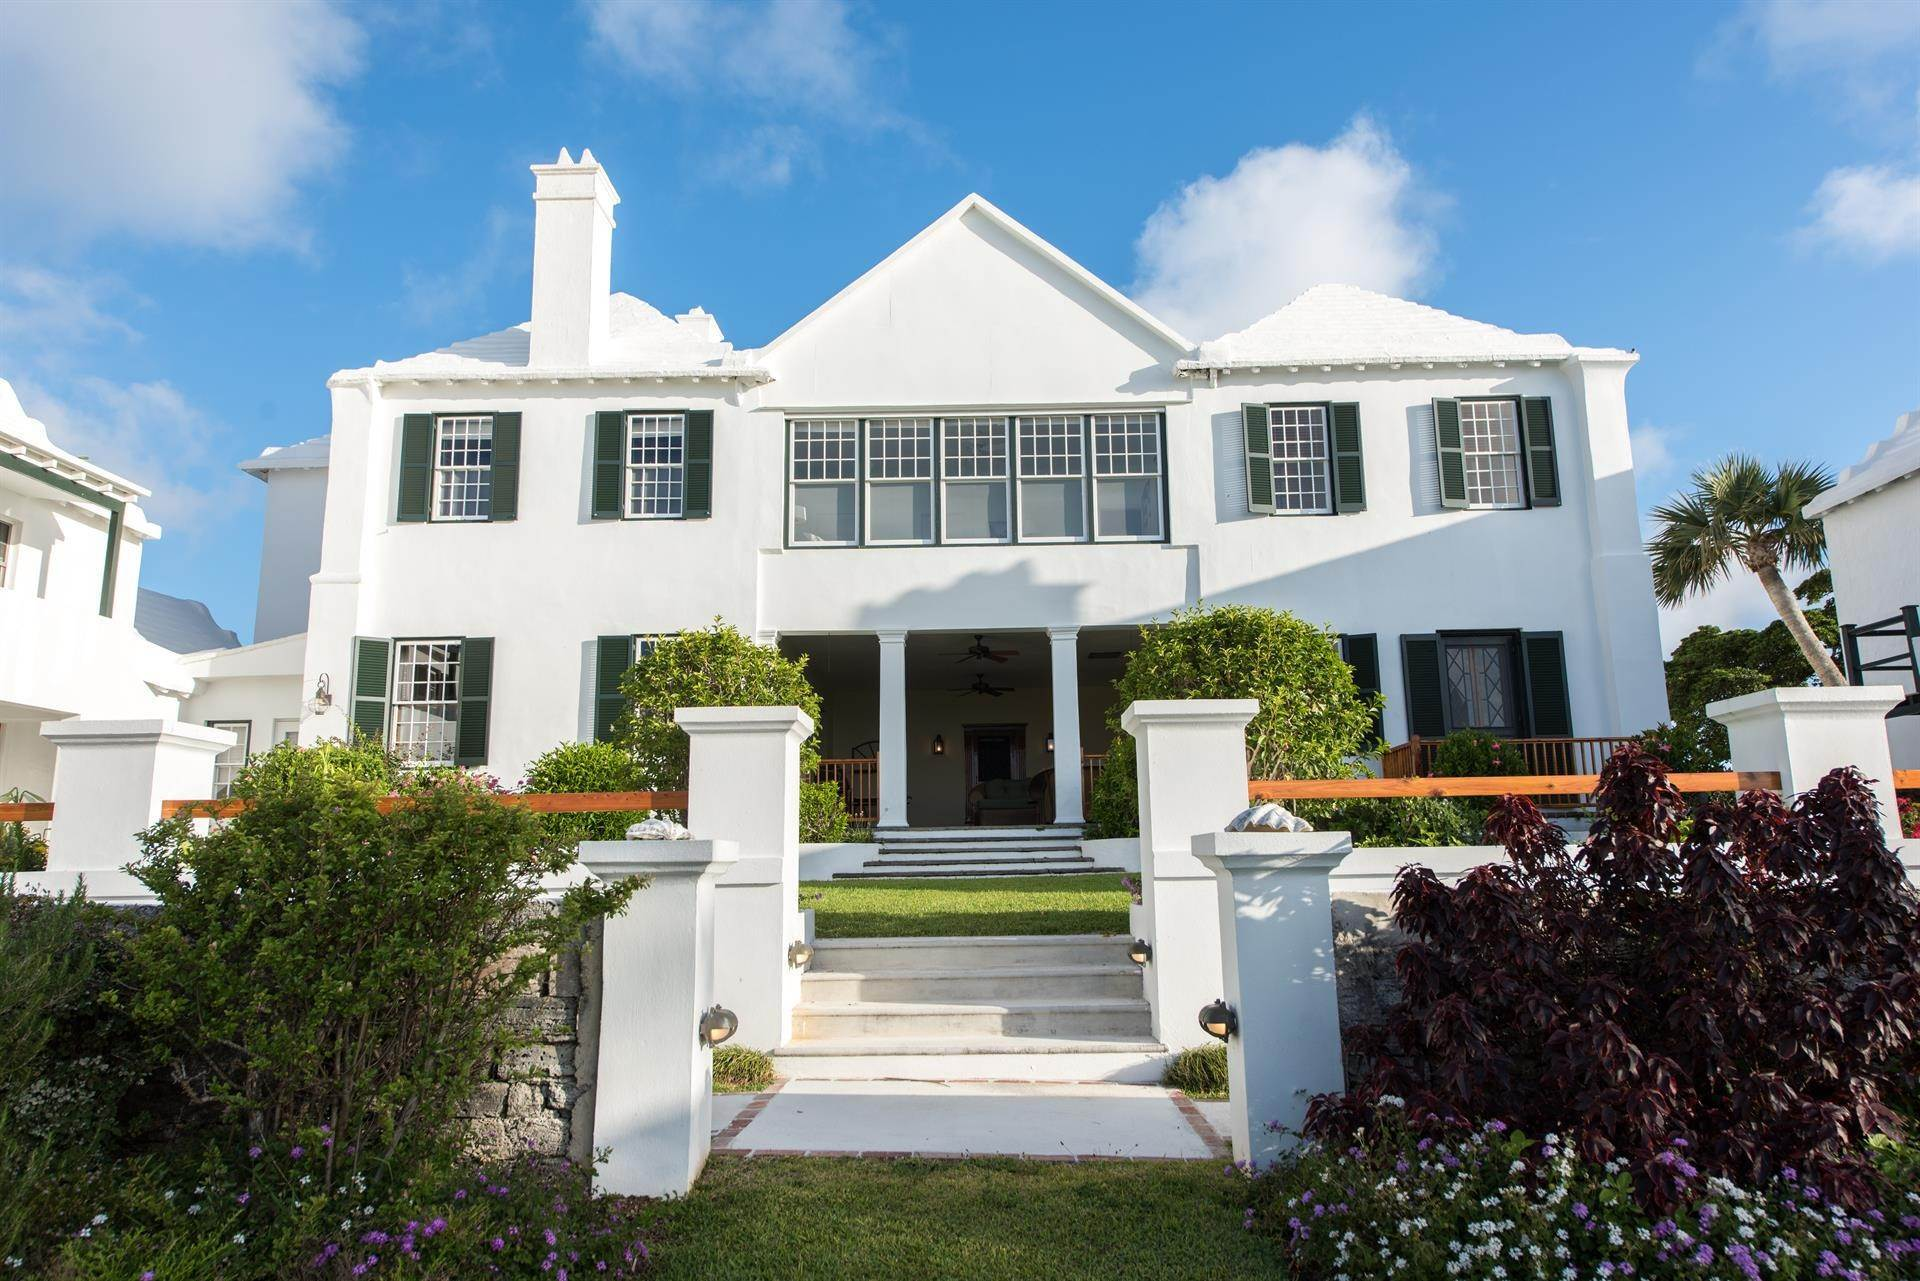 21. Địa ốc vì Bán tại Bellevue Estate At Grape Bay Beach 6 Bellevue Drive Paget Parish, Bermuda,PG06 Bermuda